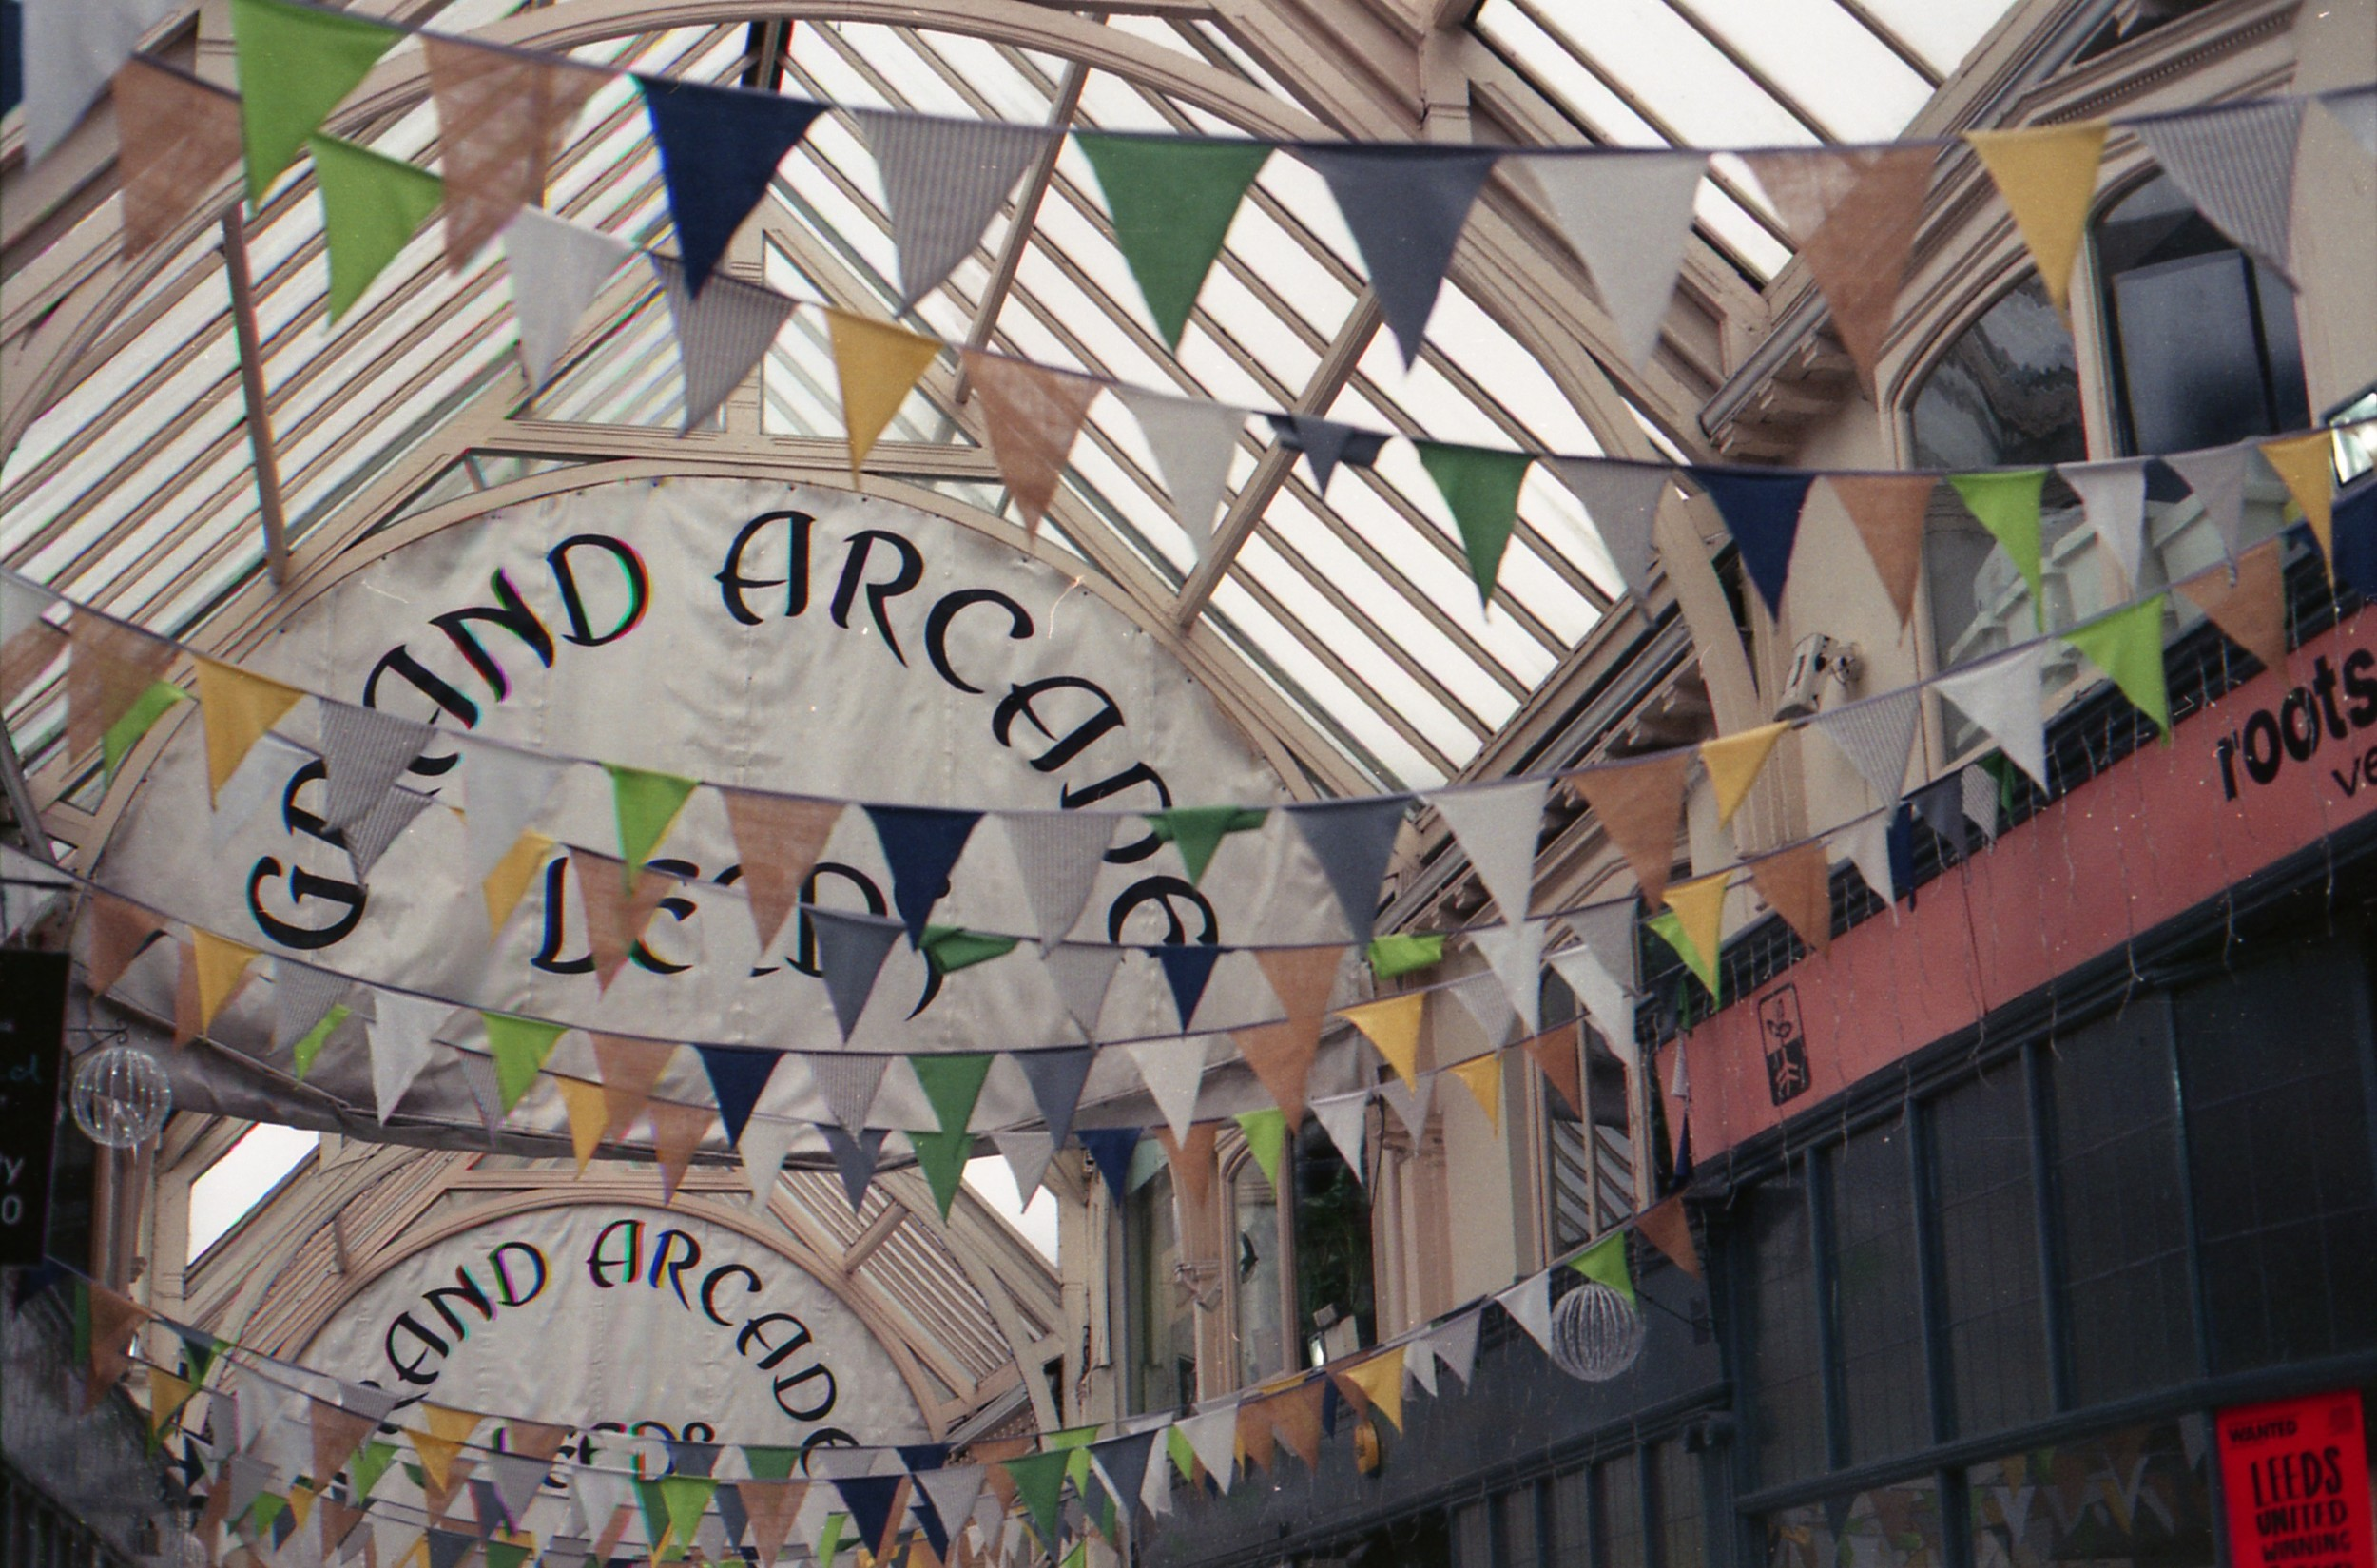 69/366 - The Grand Arcade in Leeds, it looks so happy with all the bunting.